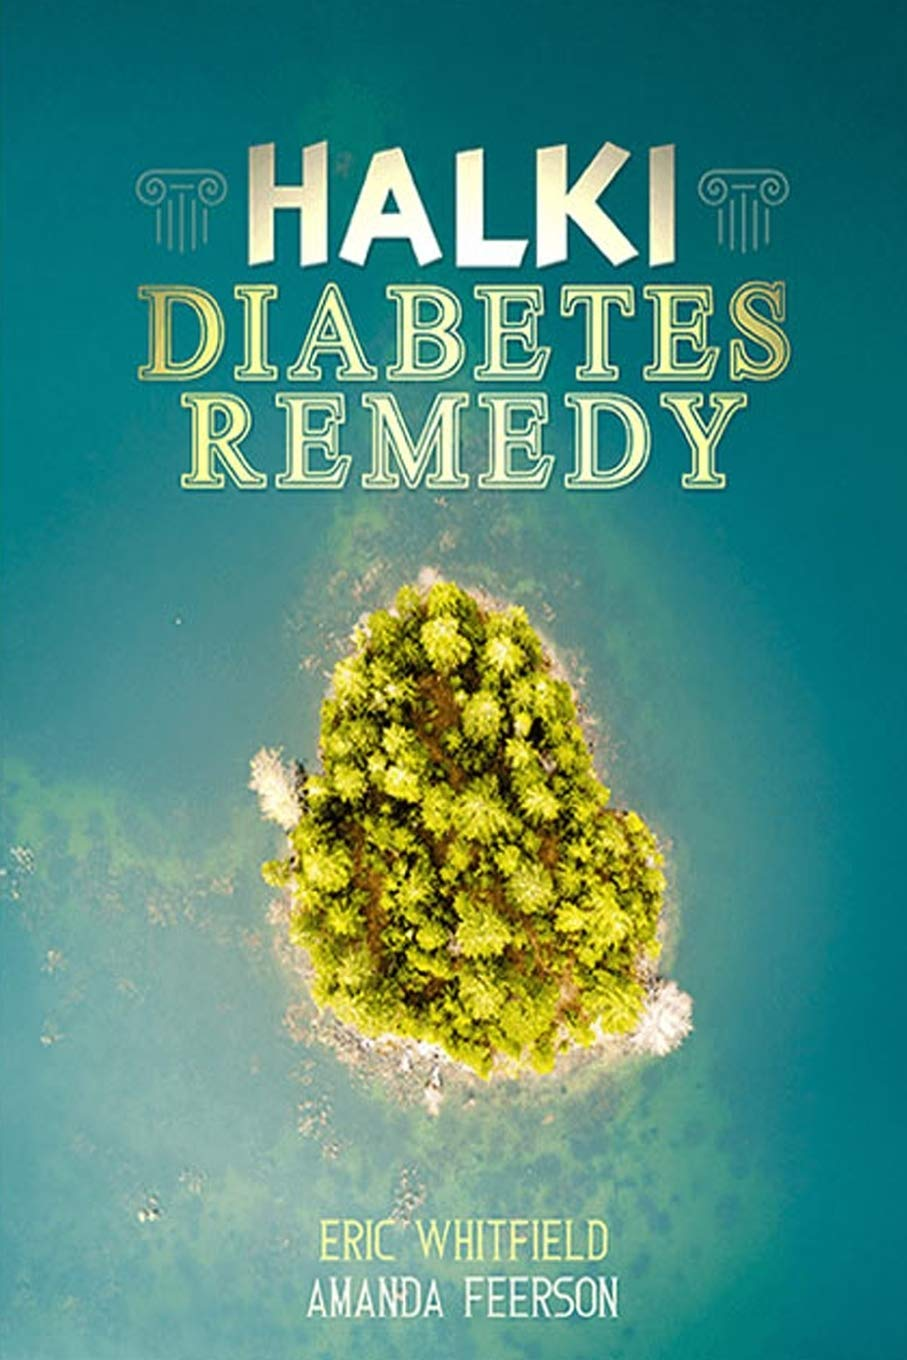 Reserve Diabetes  Outlet Reseller